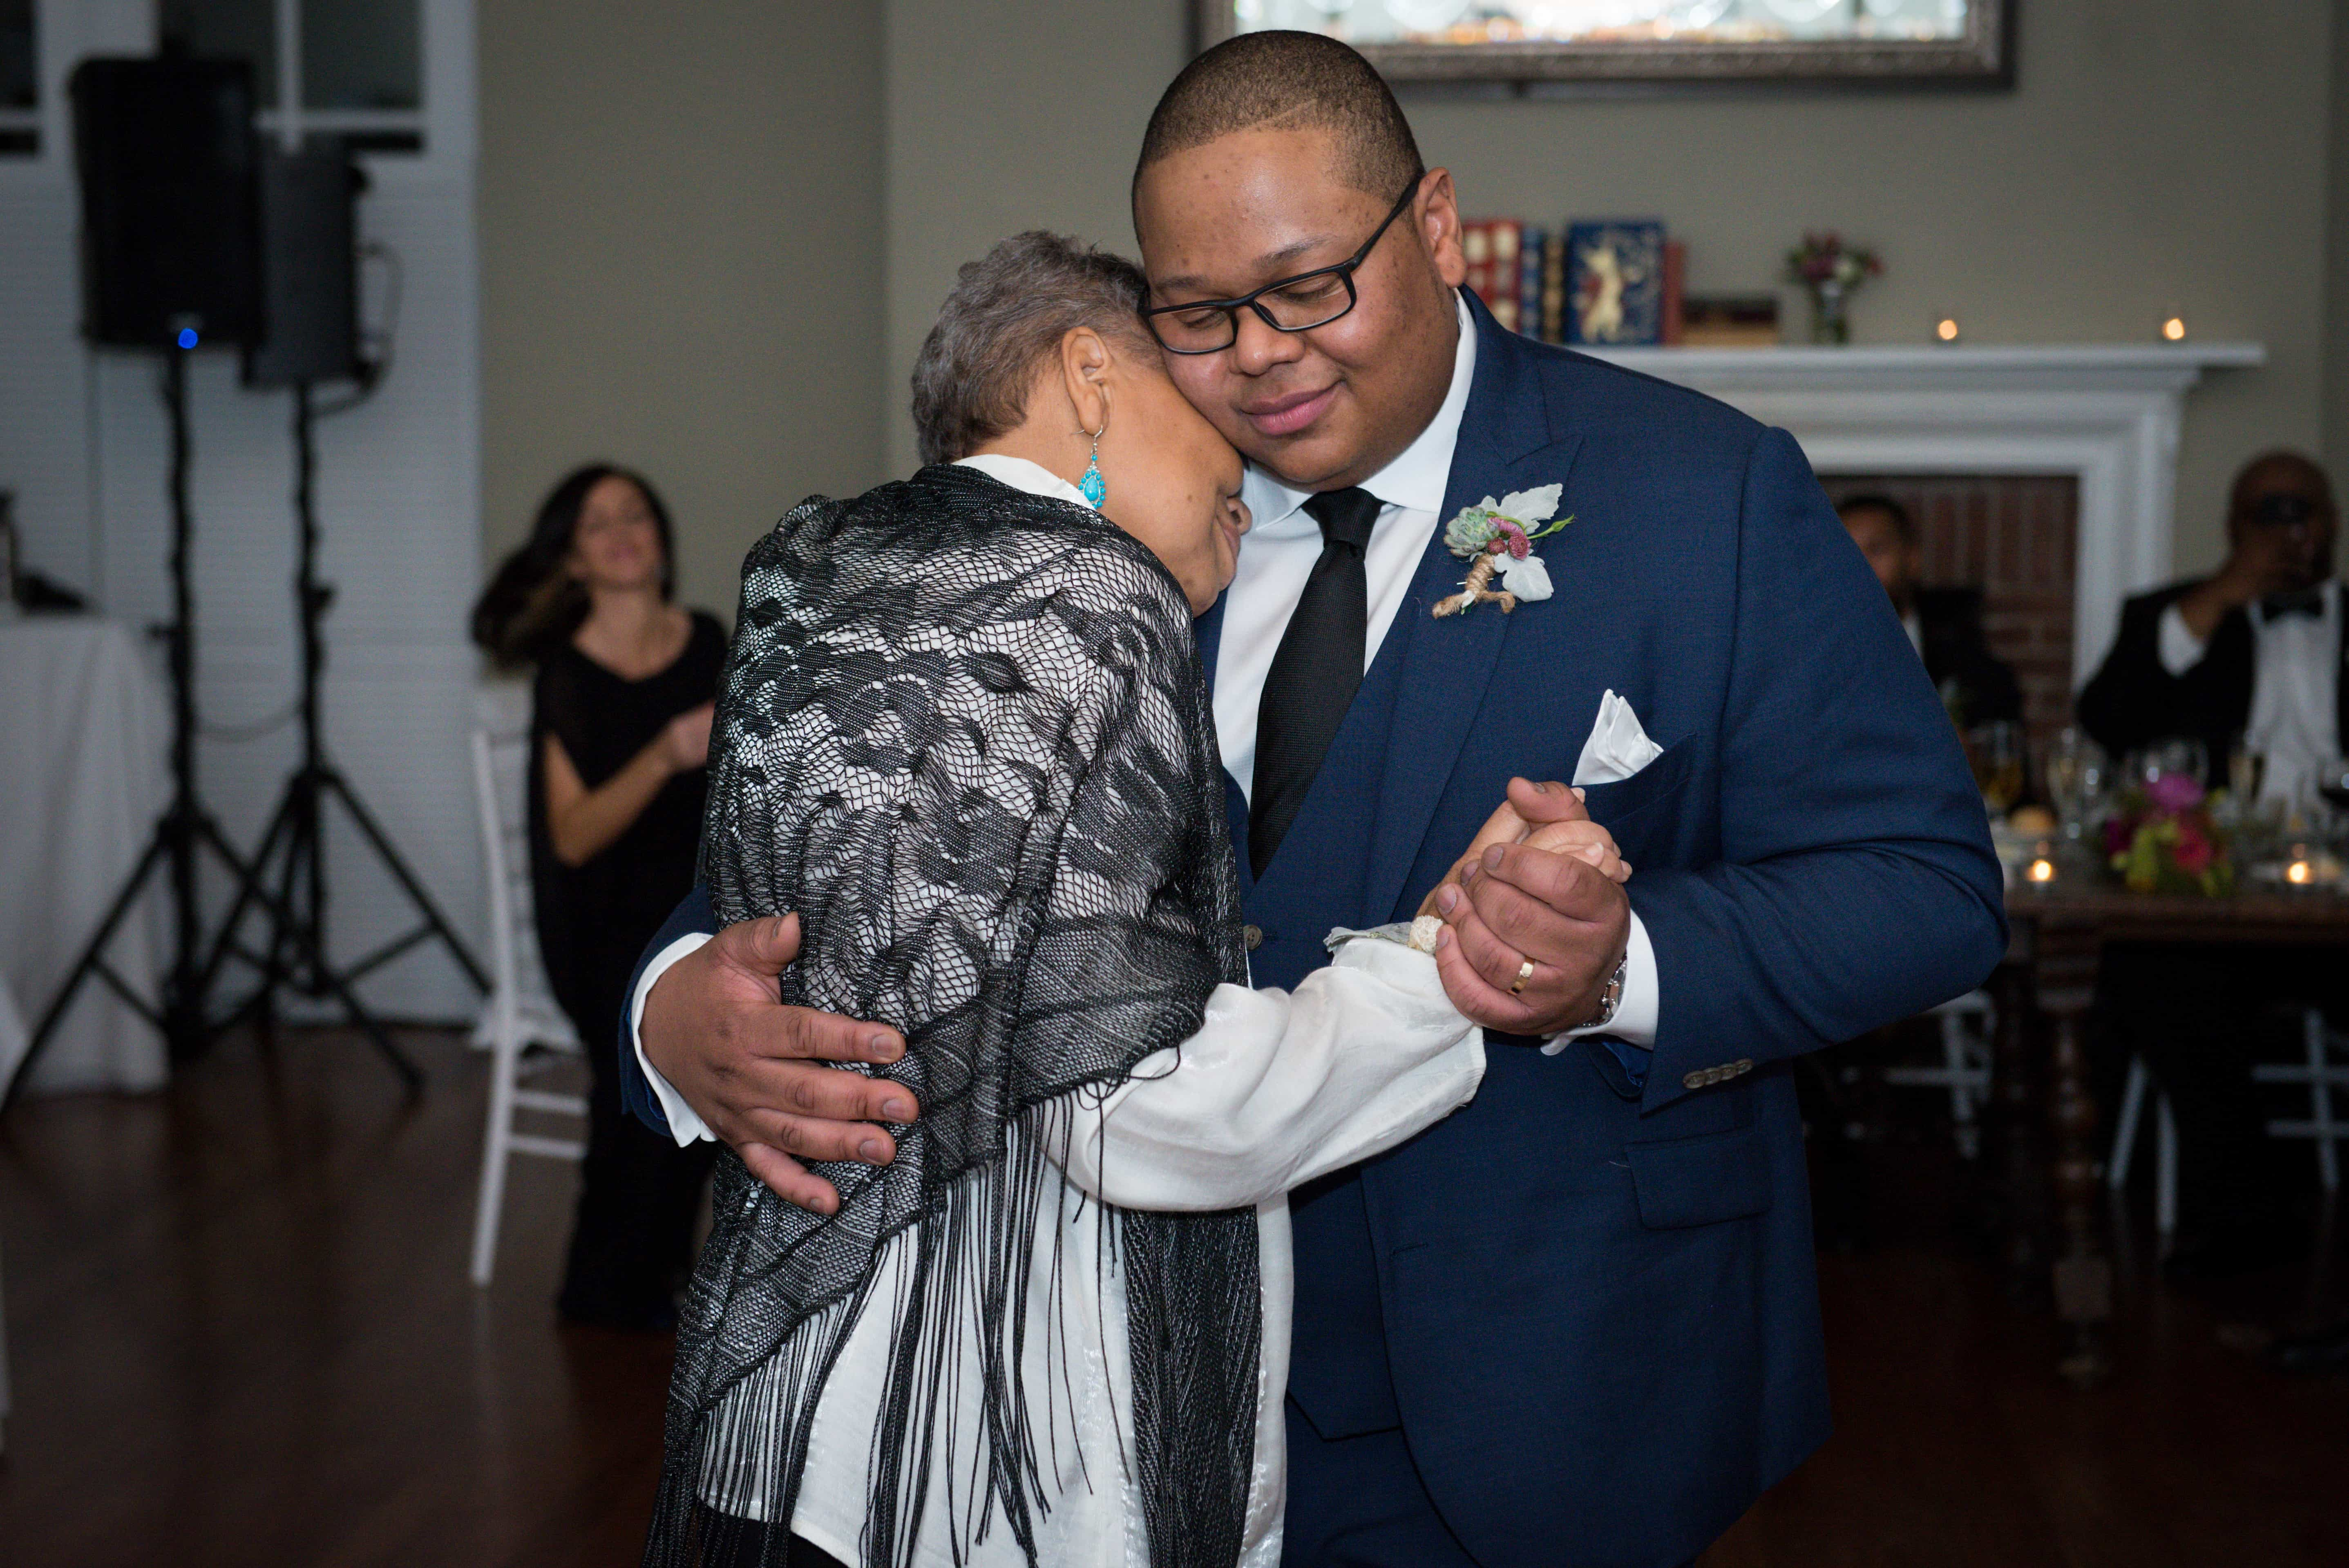 Hudson Valley Wedding Photographer, Mother and Groom wedding dance at a Highlands Country Club Wedding in Garrison, NY